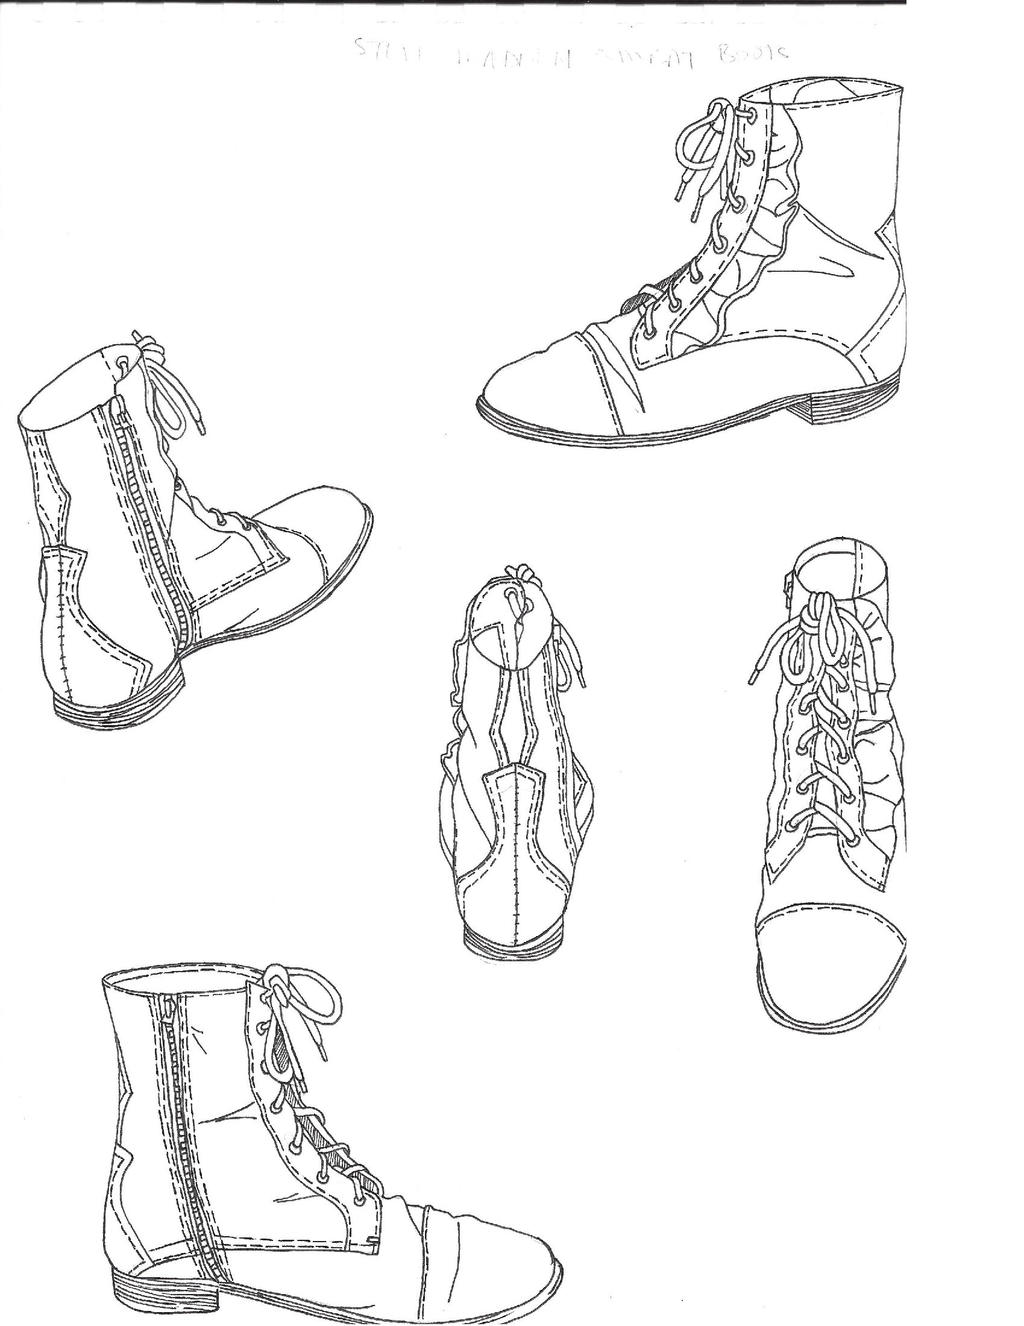 Uncategorized Draw Boots combat boot sketches by louie xv on deviantart xv